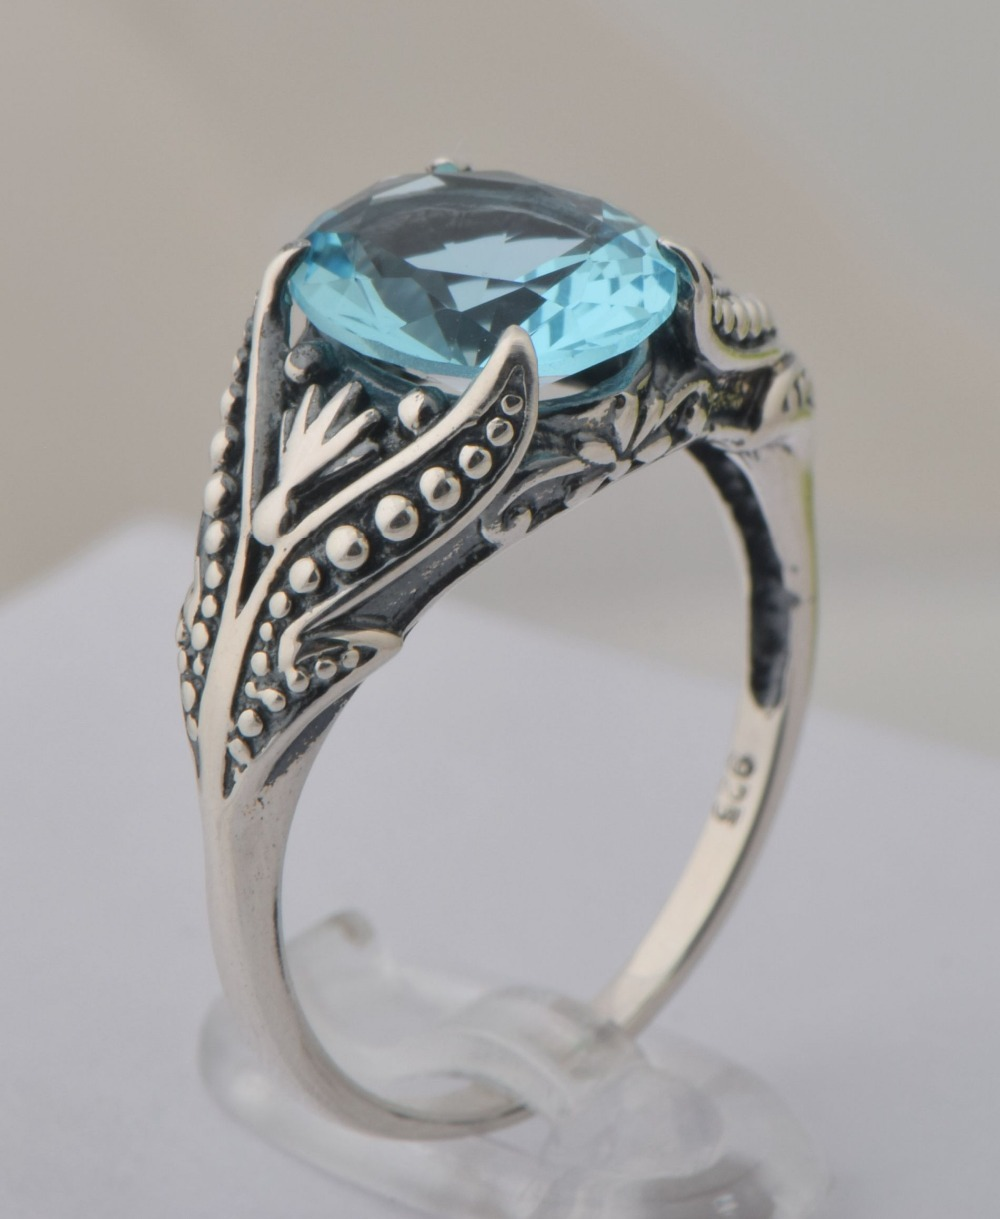 ca8704ddac721 US $26.99 |Fashion 925 sterling silver Roman style restoring ancient ways  fine carving queen aquamarine index finger rings-in Rings from Jewelry & ...